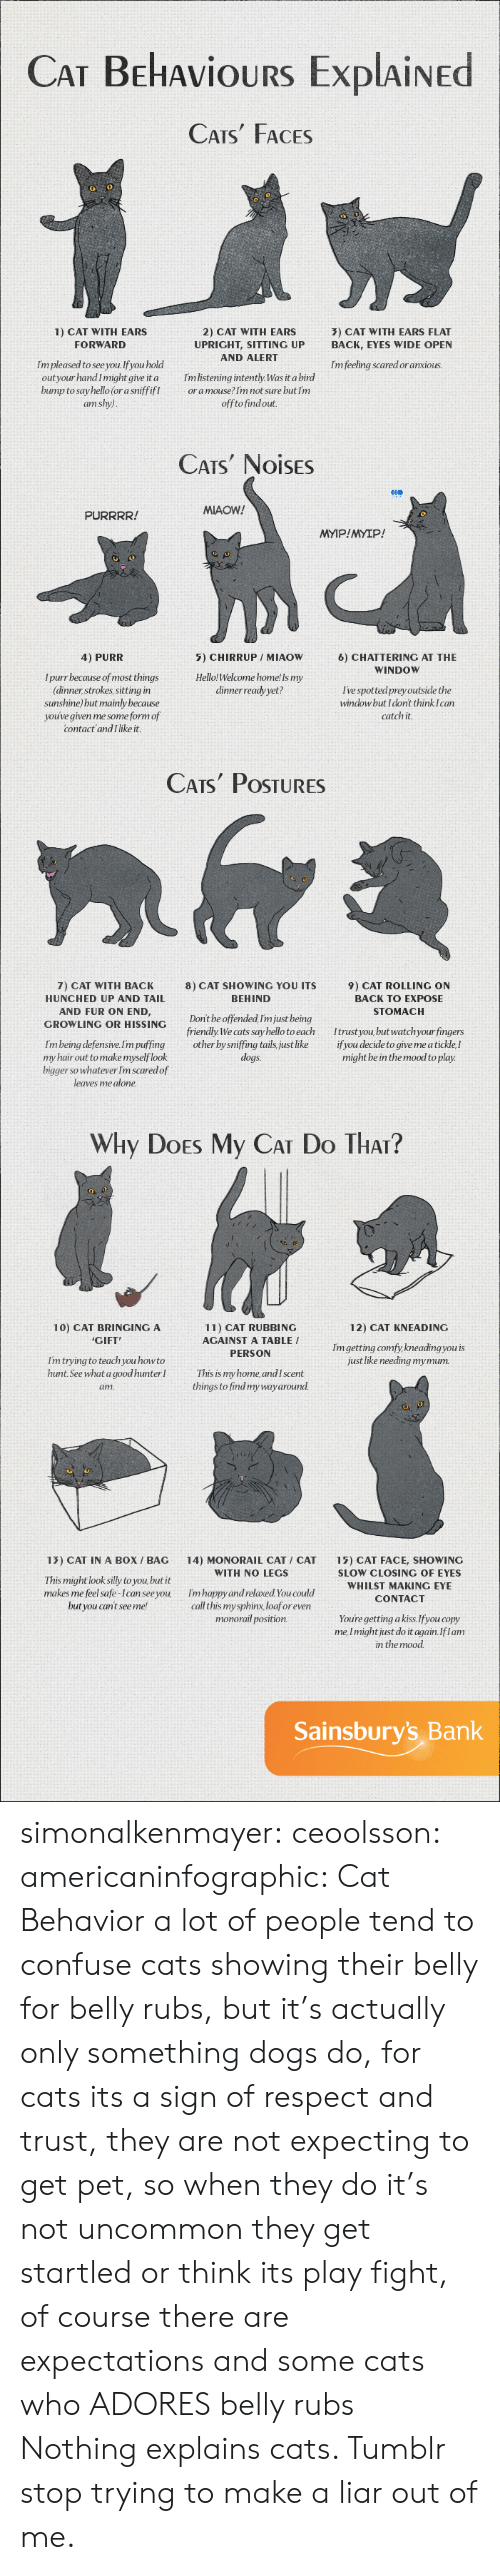 whilst: CAT BEHAvioURS ExplAiNED  CATS FACES  2) CAT WITH EARS  UPRIGHT, SITTING UP  AND ALERT  1) CAT WITH EARS  3) CAT WITH EARS FLAT  BACK, EYES WIDE OPEN  FORWARD  Im pleased to see you.If you hold  outyour handImight give it a mlistening intently. Was it a bird  bump to say hello (or a sniffifIoramouse?Im not sure but Im  Im feeling scared or anxious  am shy)  offtofindout  CATS NOISES  MIAOW!  PURRRR!  MYIP!MYIP!  4) PURR  5) CHIRRUP /MIAOW  HellolWelcome home! Is my  dinnerready yet?  6) CHATTERING AT THE  WINDOW  I purr because of most things  (dinner strokes, sitting in  sunshine but mainly because  youúve given me some form of  I've spottedpreyoutside the  window but I dont think Ican  catch it  contact andI like it.   CATs PoSTURES  7) CAT WITH BACK  HUNCHED UP AND TAIL  AND FUR ON END,  8) CAT SHOWING YOU ITS  BEHIND  9) CAT ROLLING ON  BACK TO EXPOSE  STOMACH  GROWLING OR HISSINC Dont be offended Im just being  friendly We cats say hello toeach Itrust you but watchyour fingers  Im being defensive.lim puffing other by sniffing tails, just like ifyou decide to give me a tickle,I  dogs.  my hair out to make myselflook  bigger so whatever Im scaredof  leaves me alone.  might be in the mood to play.   Why DoEs My CAT Do THAr?  10) CAT BRINGING A  CIFT  12) CAT KNEADING  11) CAT RUBBING  AGAINST A TABLE /  PERSON  Imgetting comfy, kneading you is  just like needing mymum.  Im trying to teach you howto  hunt.See what a goodhunter  am.  This is my home andIscent  things to find mywayaround.  13) CAT IN A BoX / BAG 14) MONORAIL CAT CAT 15) CAT FACE, SHOWING  WITH NO LEGS  This might look silly to you, but it  makes me feel safe-Ican seeyou  but you cant seeme!  SLOW CLOSING OF EYES  WHILST MAKING EYE  CONTACT  Im happy and relaxed You could  call this mysphinx loaforeven  monorail position.  Youre getting akiss.Ifyou copy  me, Imightjust do it again.Iflam  in the mood  Sainsbury's Bank simonalkenmayer:  ceoolsson:  americaninfographic:  Cat Behavior   a lot of people tend to confuse cats showing their belly for belly rubs, but it's actually only something dogs do, for cats its a sign of respect and trust, they are not expecting to get pet, so when they do it's not uncommon they get startled or think its play fight, of course there are expectations and some cats who ADORES belly rubs  Nothing explains cats. Tumblr stop trying to make a liar out of me.